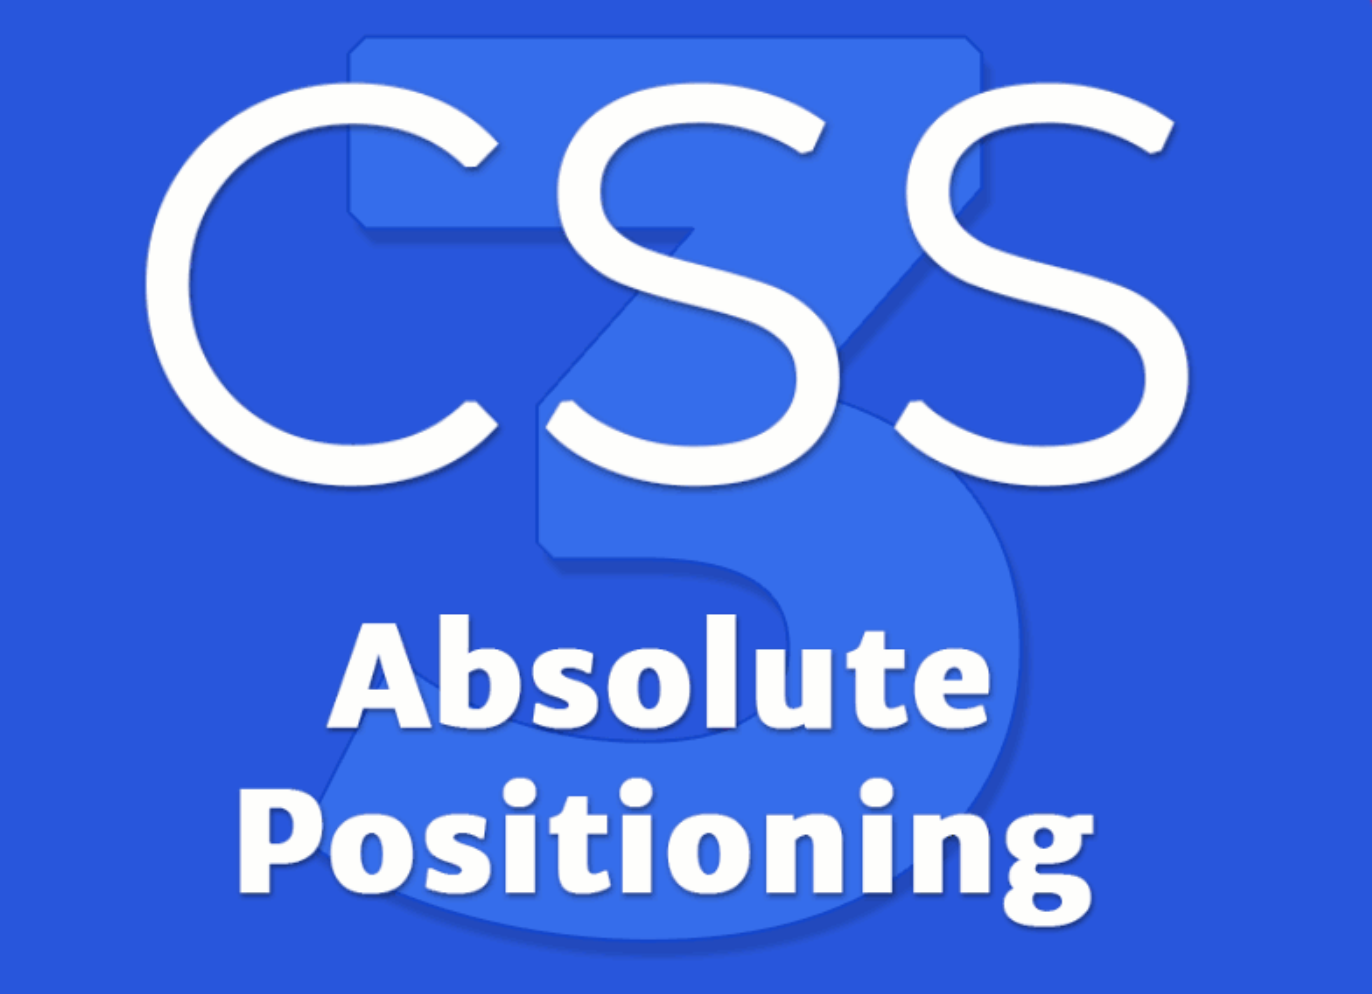 Position absolute in CSS